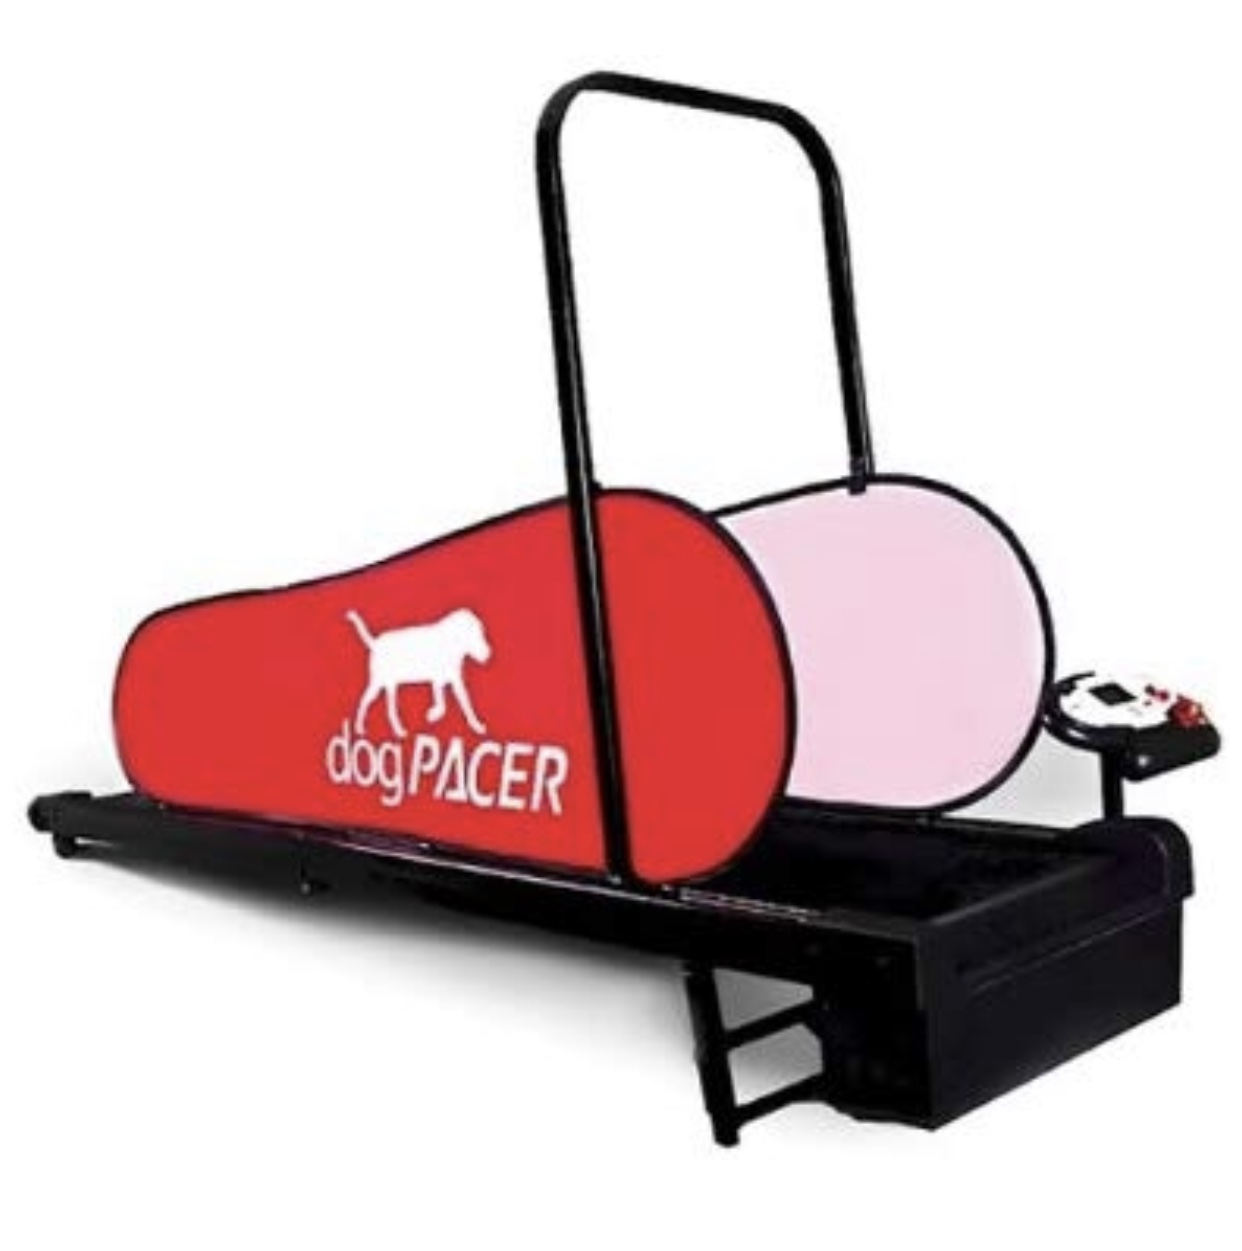 DogPacer3